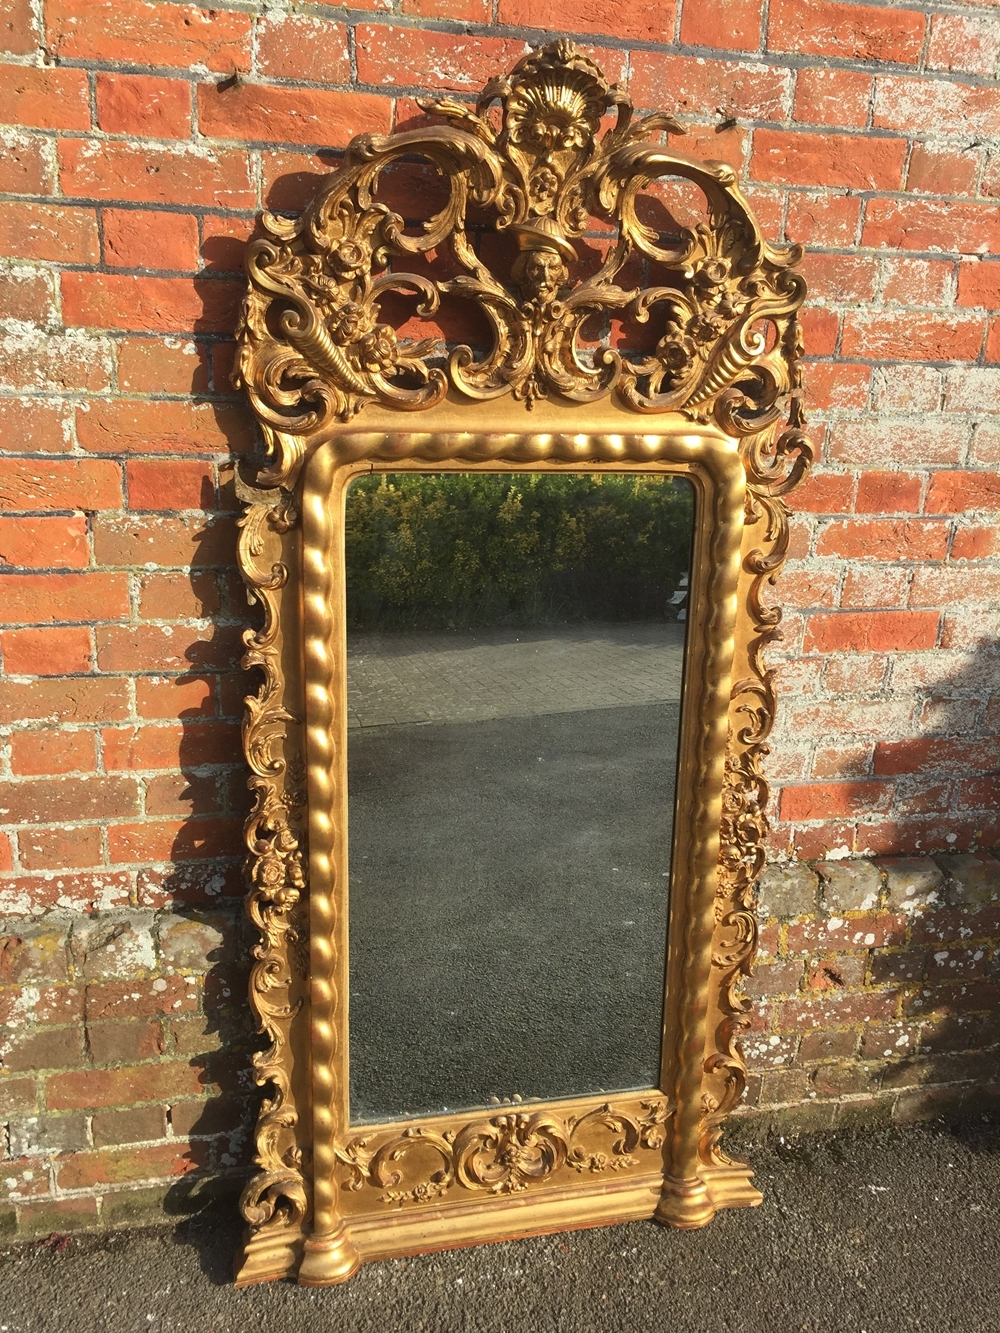 Large Overmantle Mirrors Uk Antique Overmantle Mirrors For Sale Inside Large Antique Mirrors For Sale (Image 15 of 15)